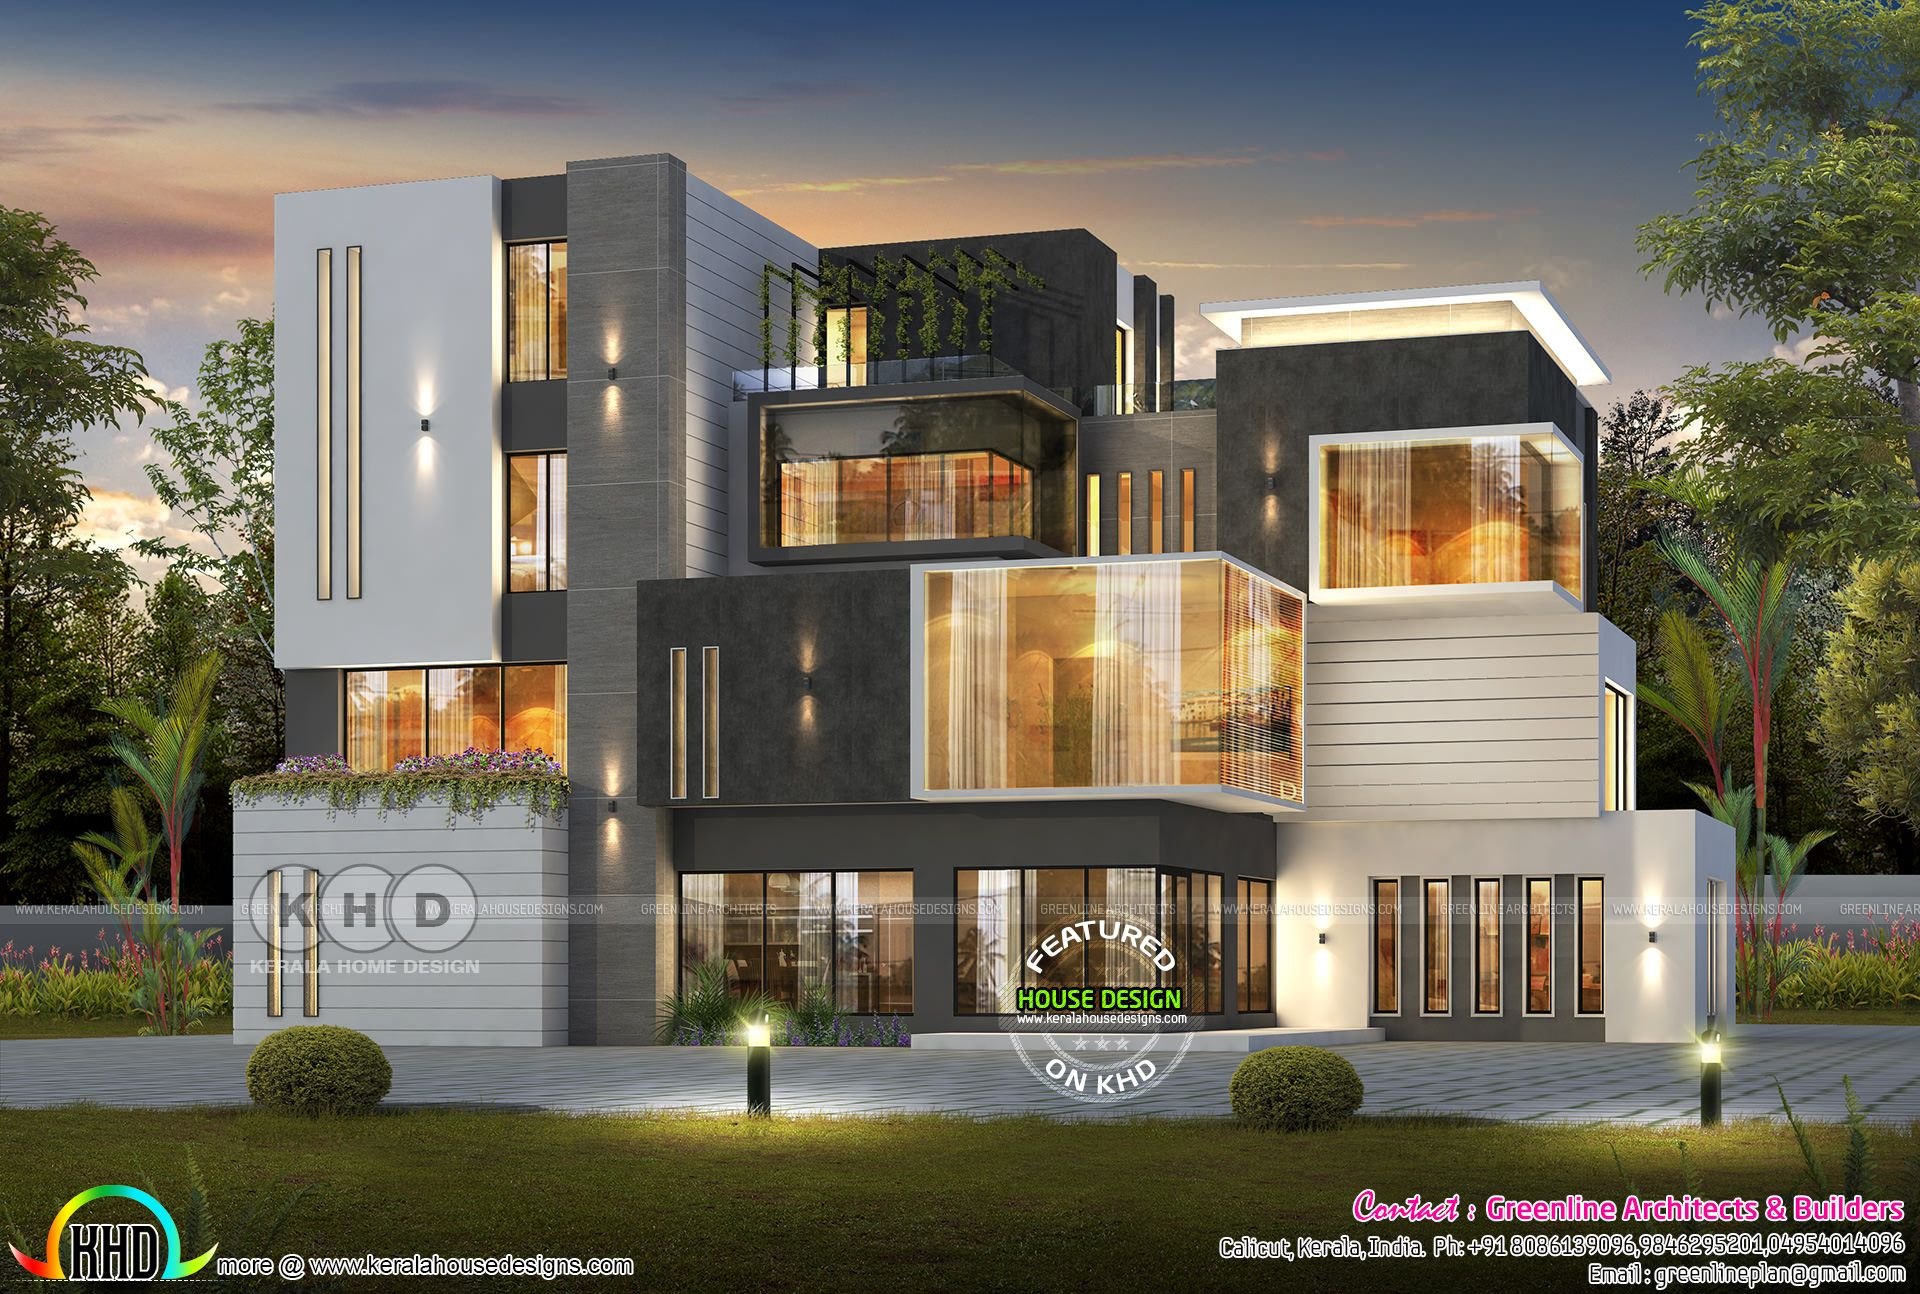 7 Bedroom Box Model Ultra Modern Home Ultra Modern Homes House Architecture Design House Designs Exterior